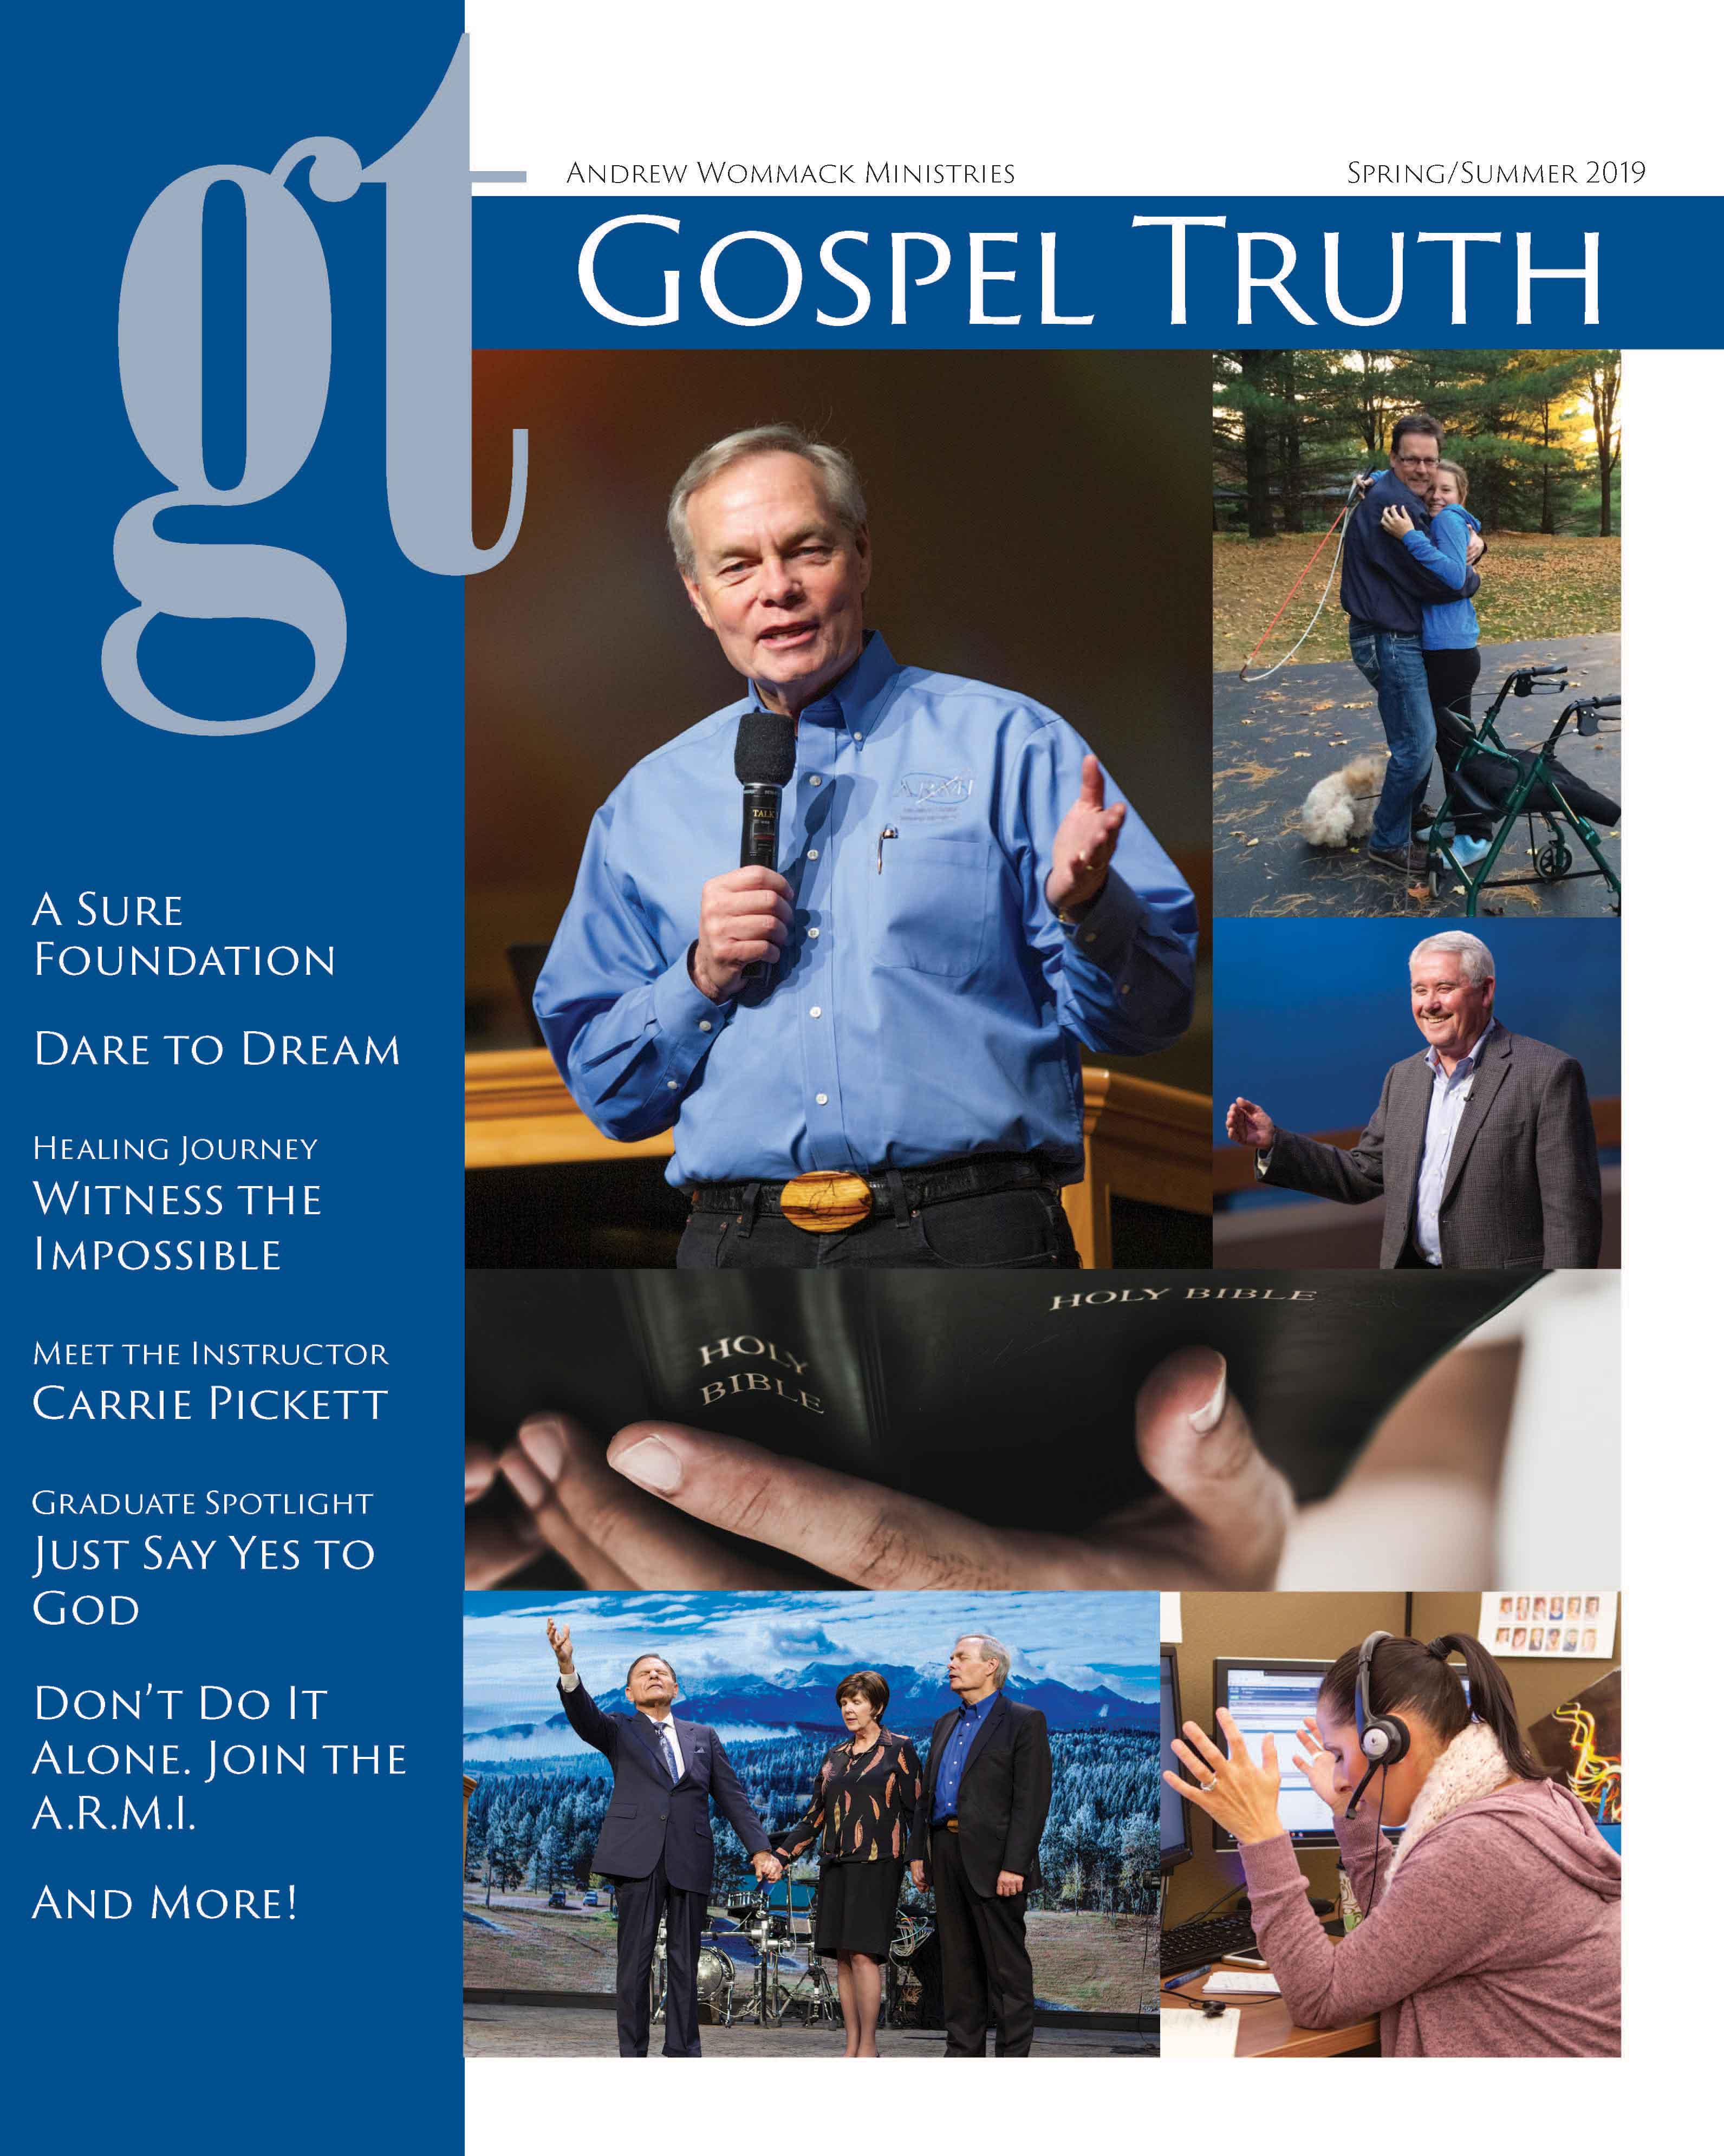 Gospel Truth Magazine - Andrew Wommack Ministries